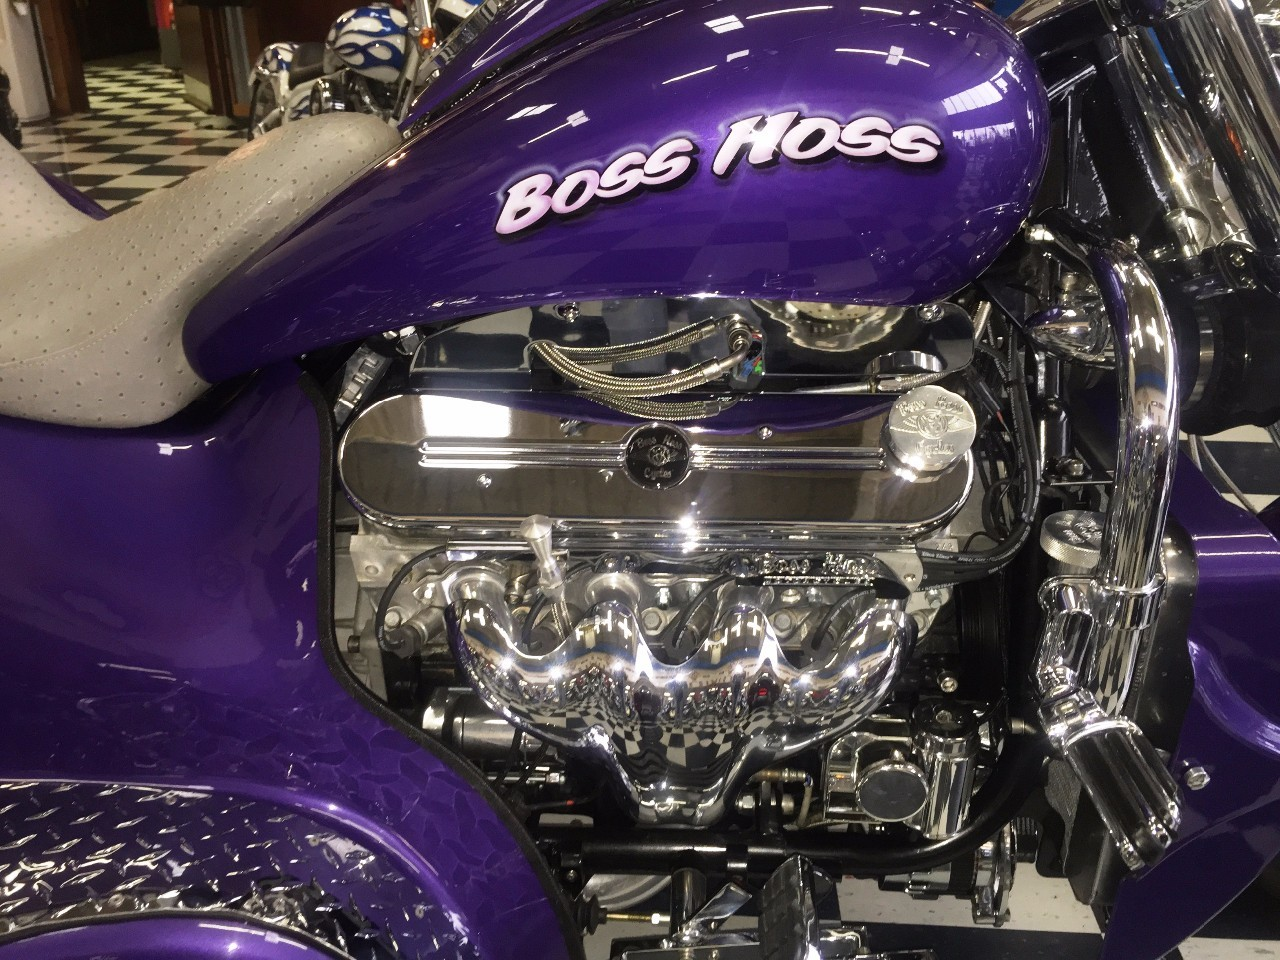 See more photos for this Boss Hoss LS300 GANGSTA , 2014 motorcycle listing